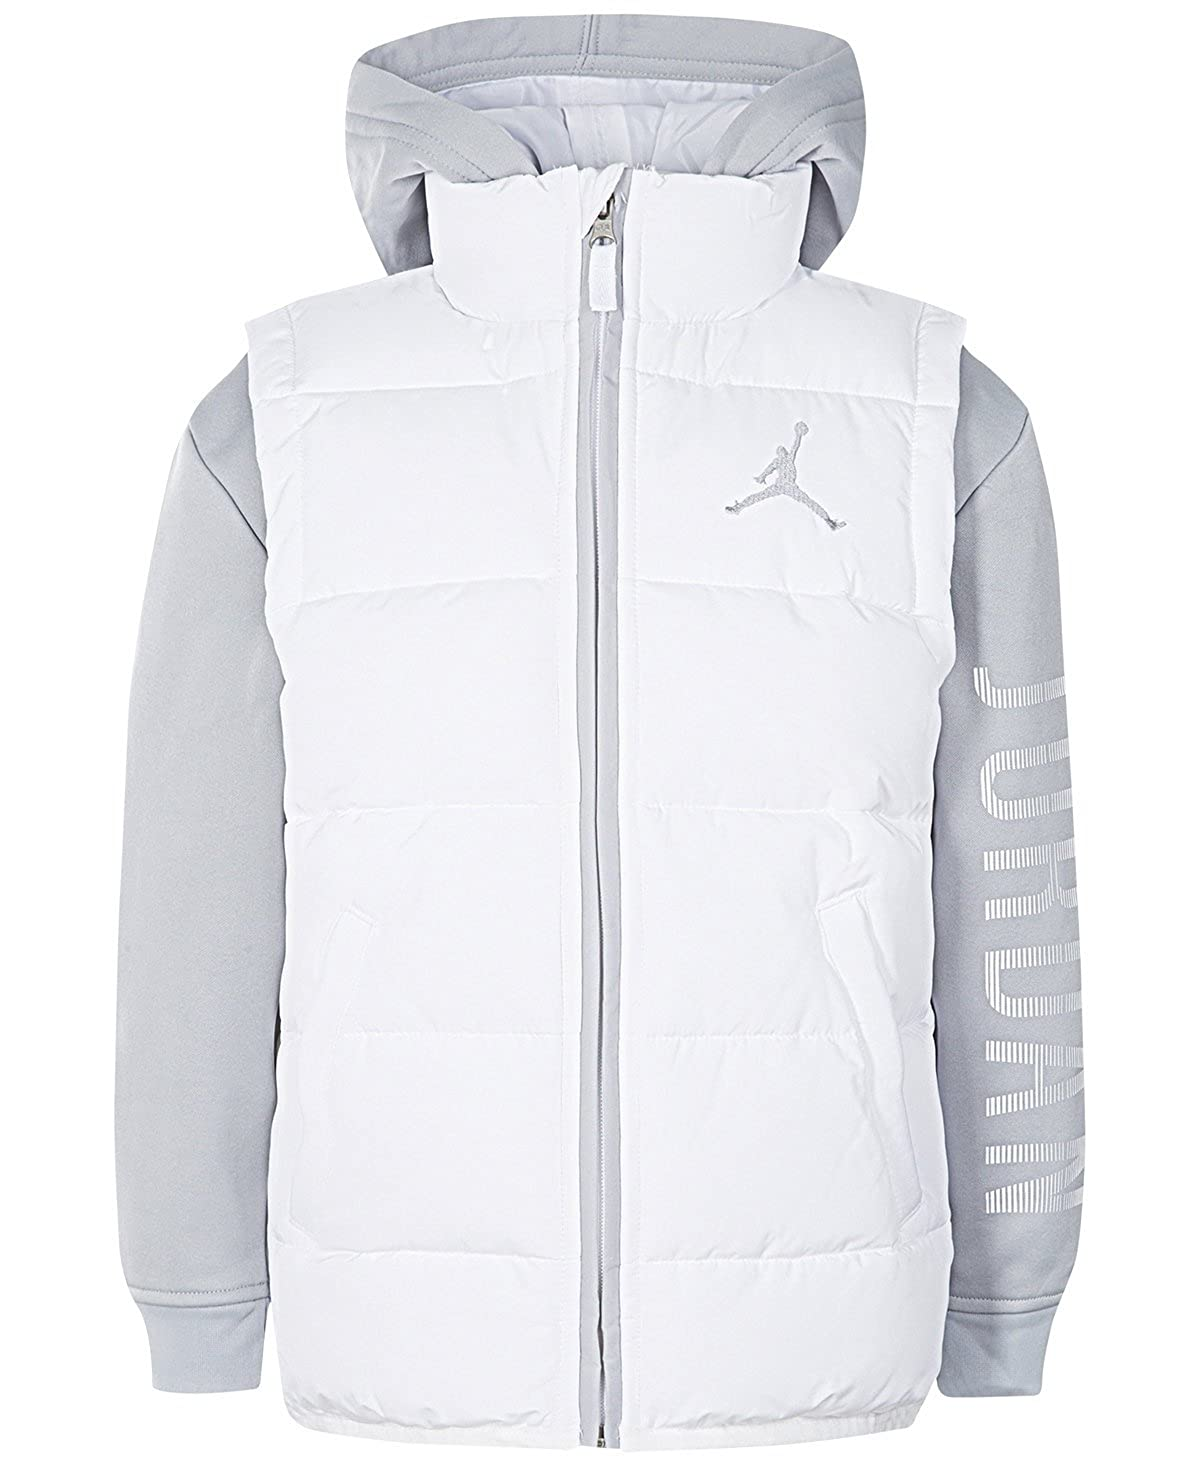 8f7cbee344dd Amazon.com  NIKE Air Jordan Big Boys  Performance Vest Jacket (White ...